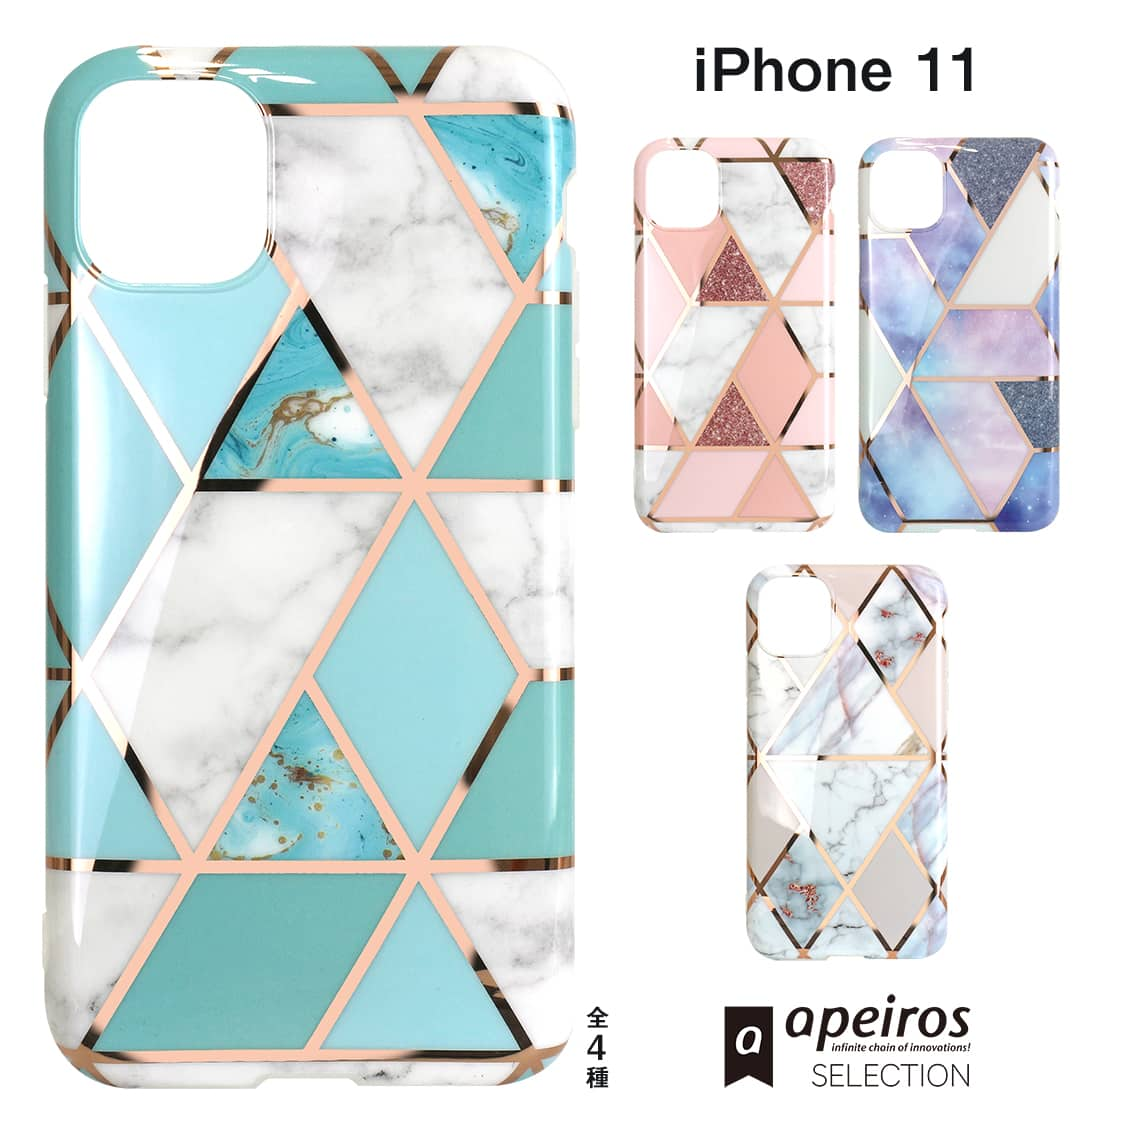 iPhone 11 大理石柄ケース [apeiros SELECTION]